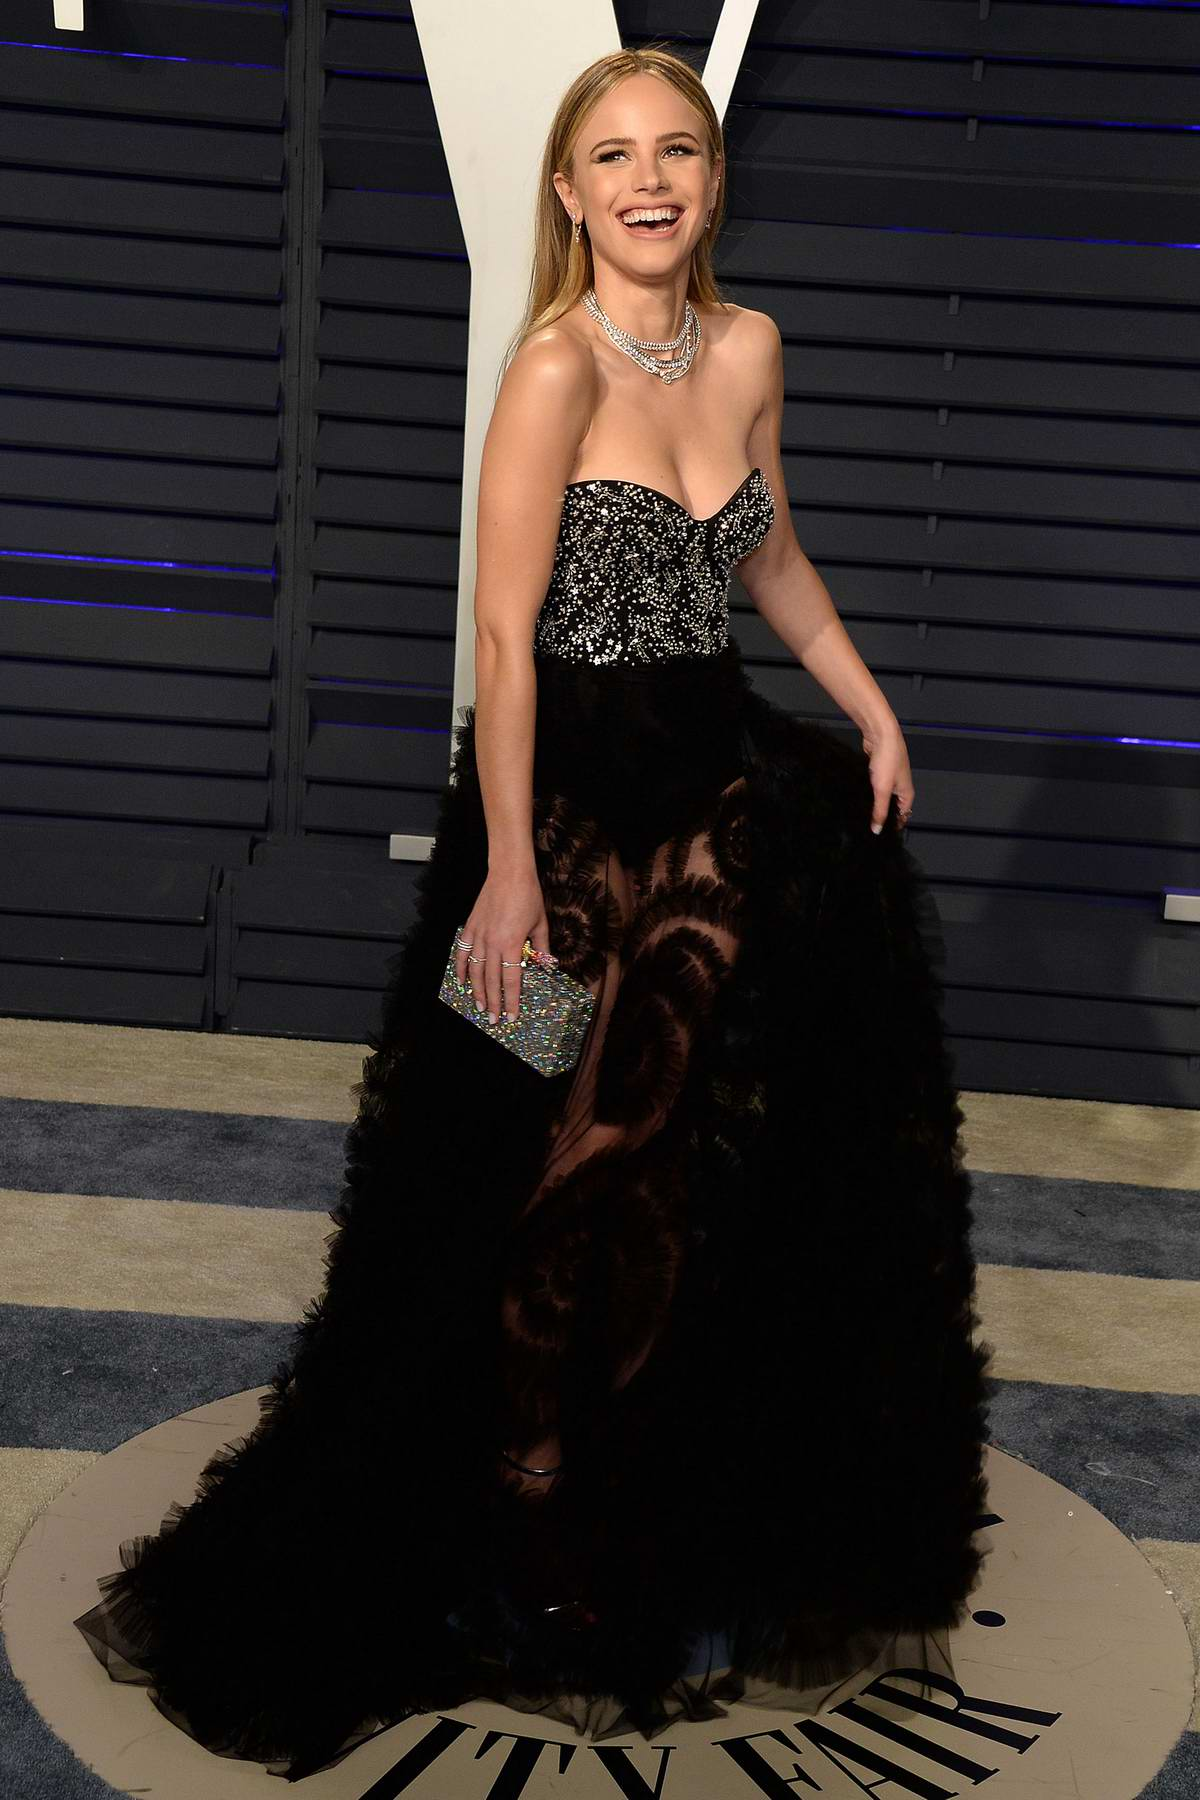 Halston Sage attends the Vanity Fair Oscar Party at Wallis Annenberg Center for the Performing Arts in Beverly Hills, California